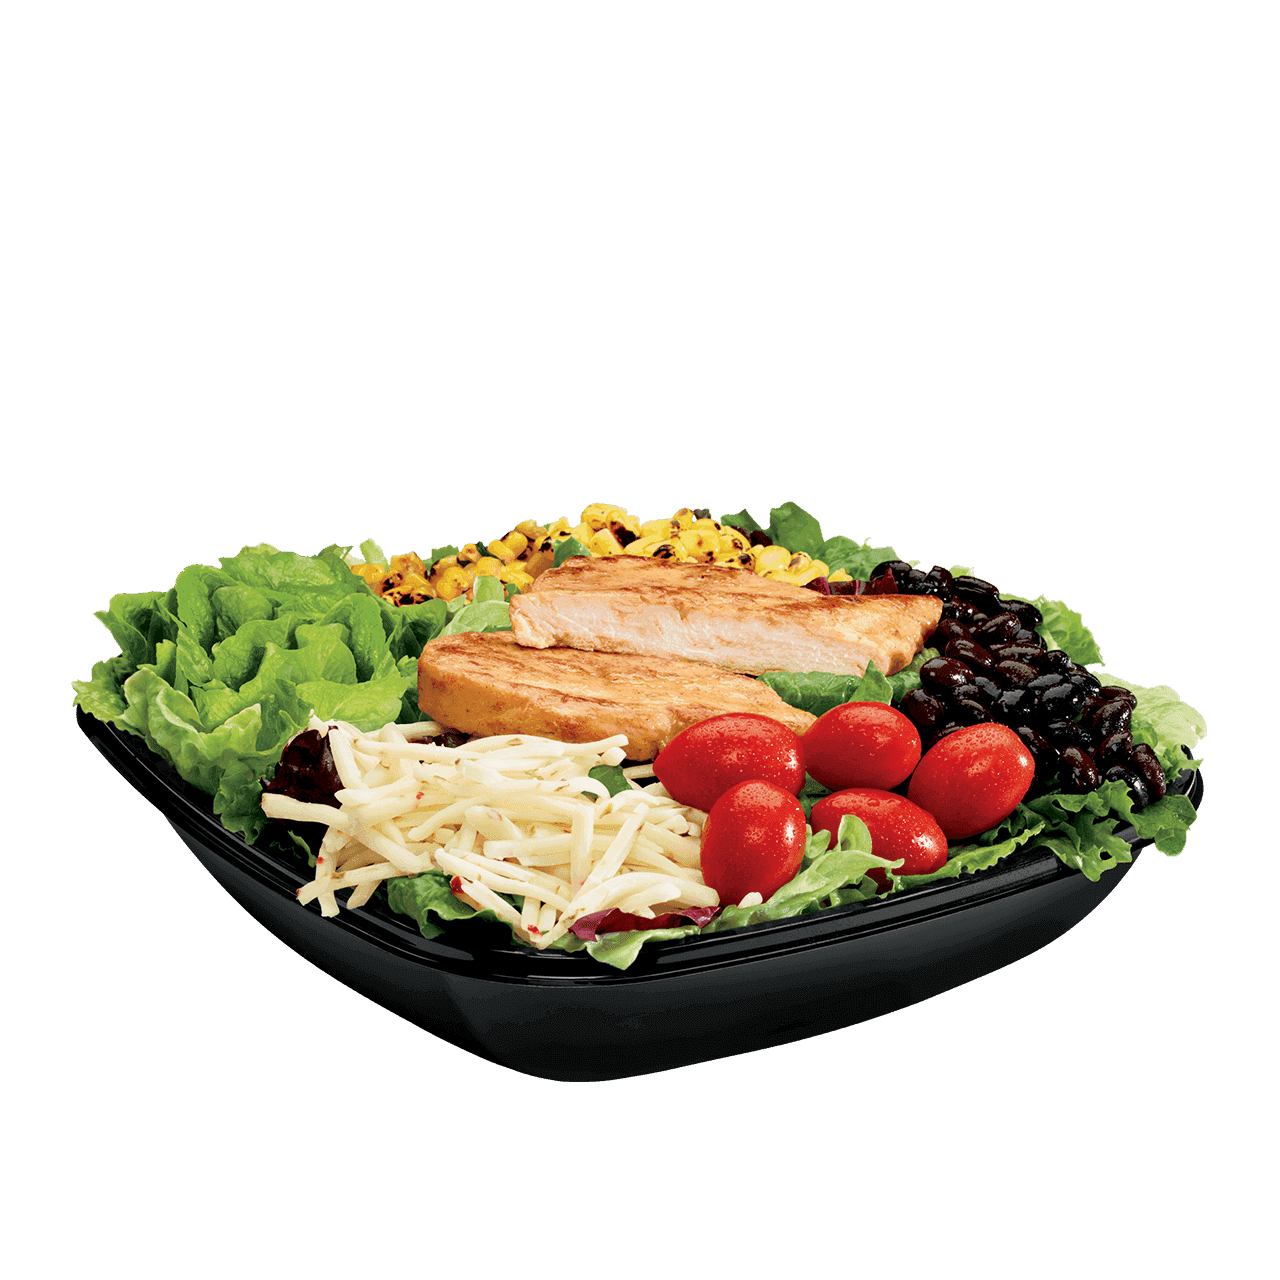 15 Meals At Jack In The Box For 500 Calories Or Less | Salad | FastFoodMenuPrices.com